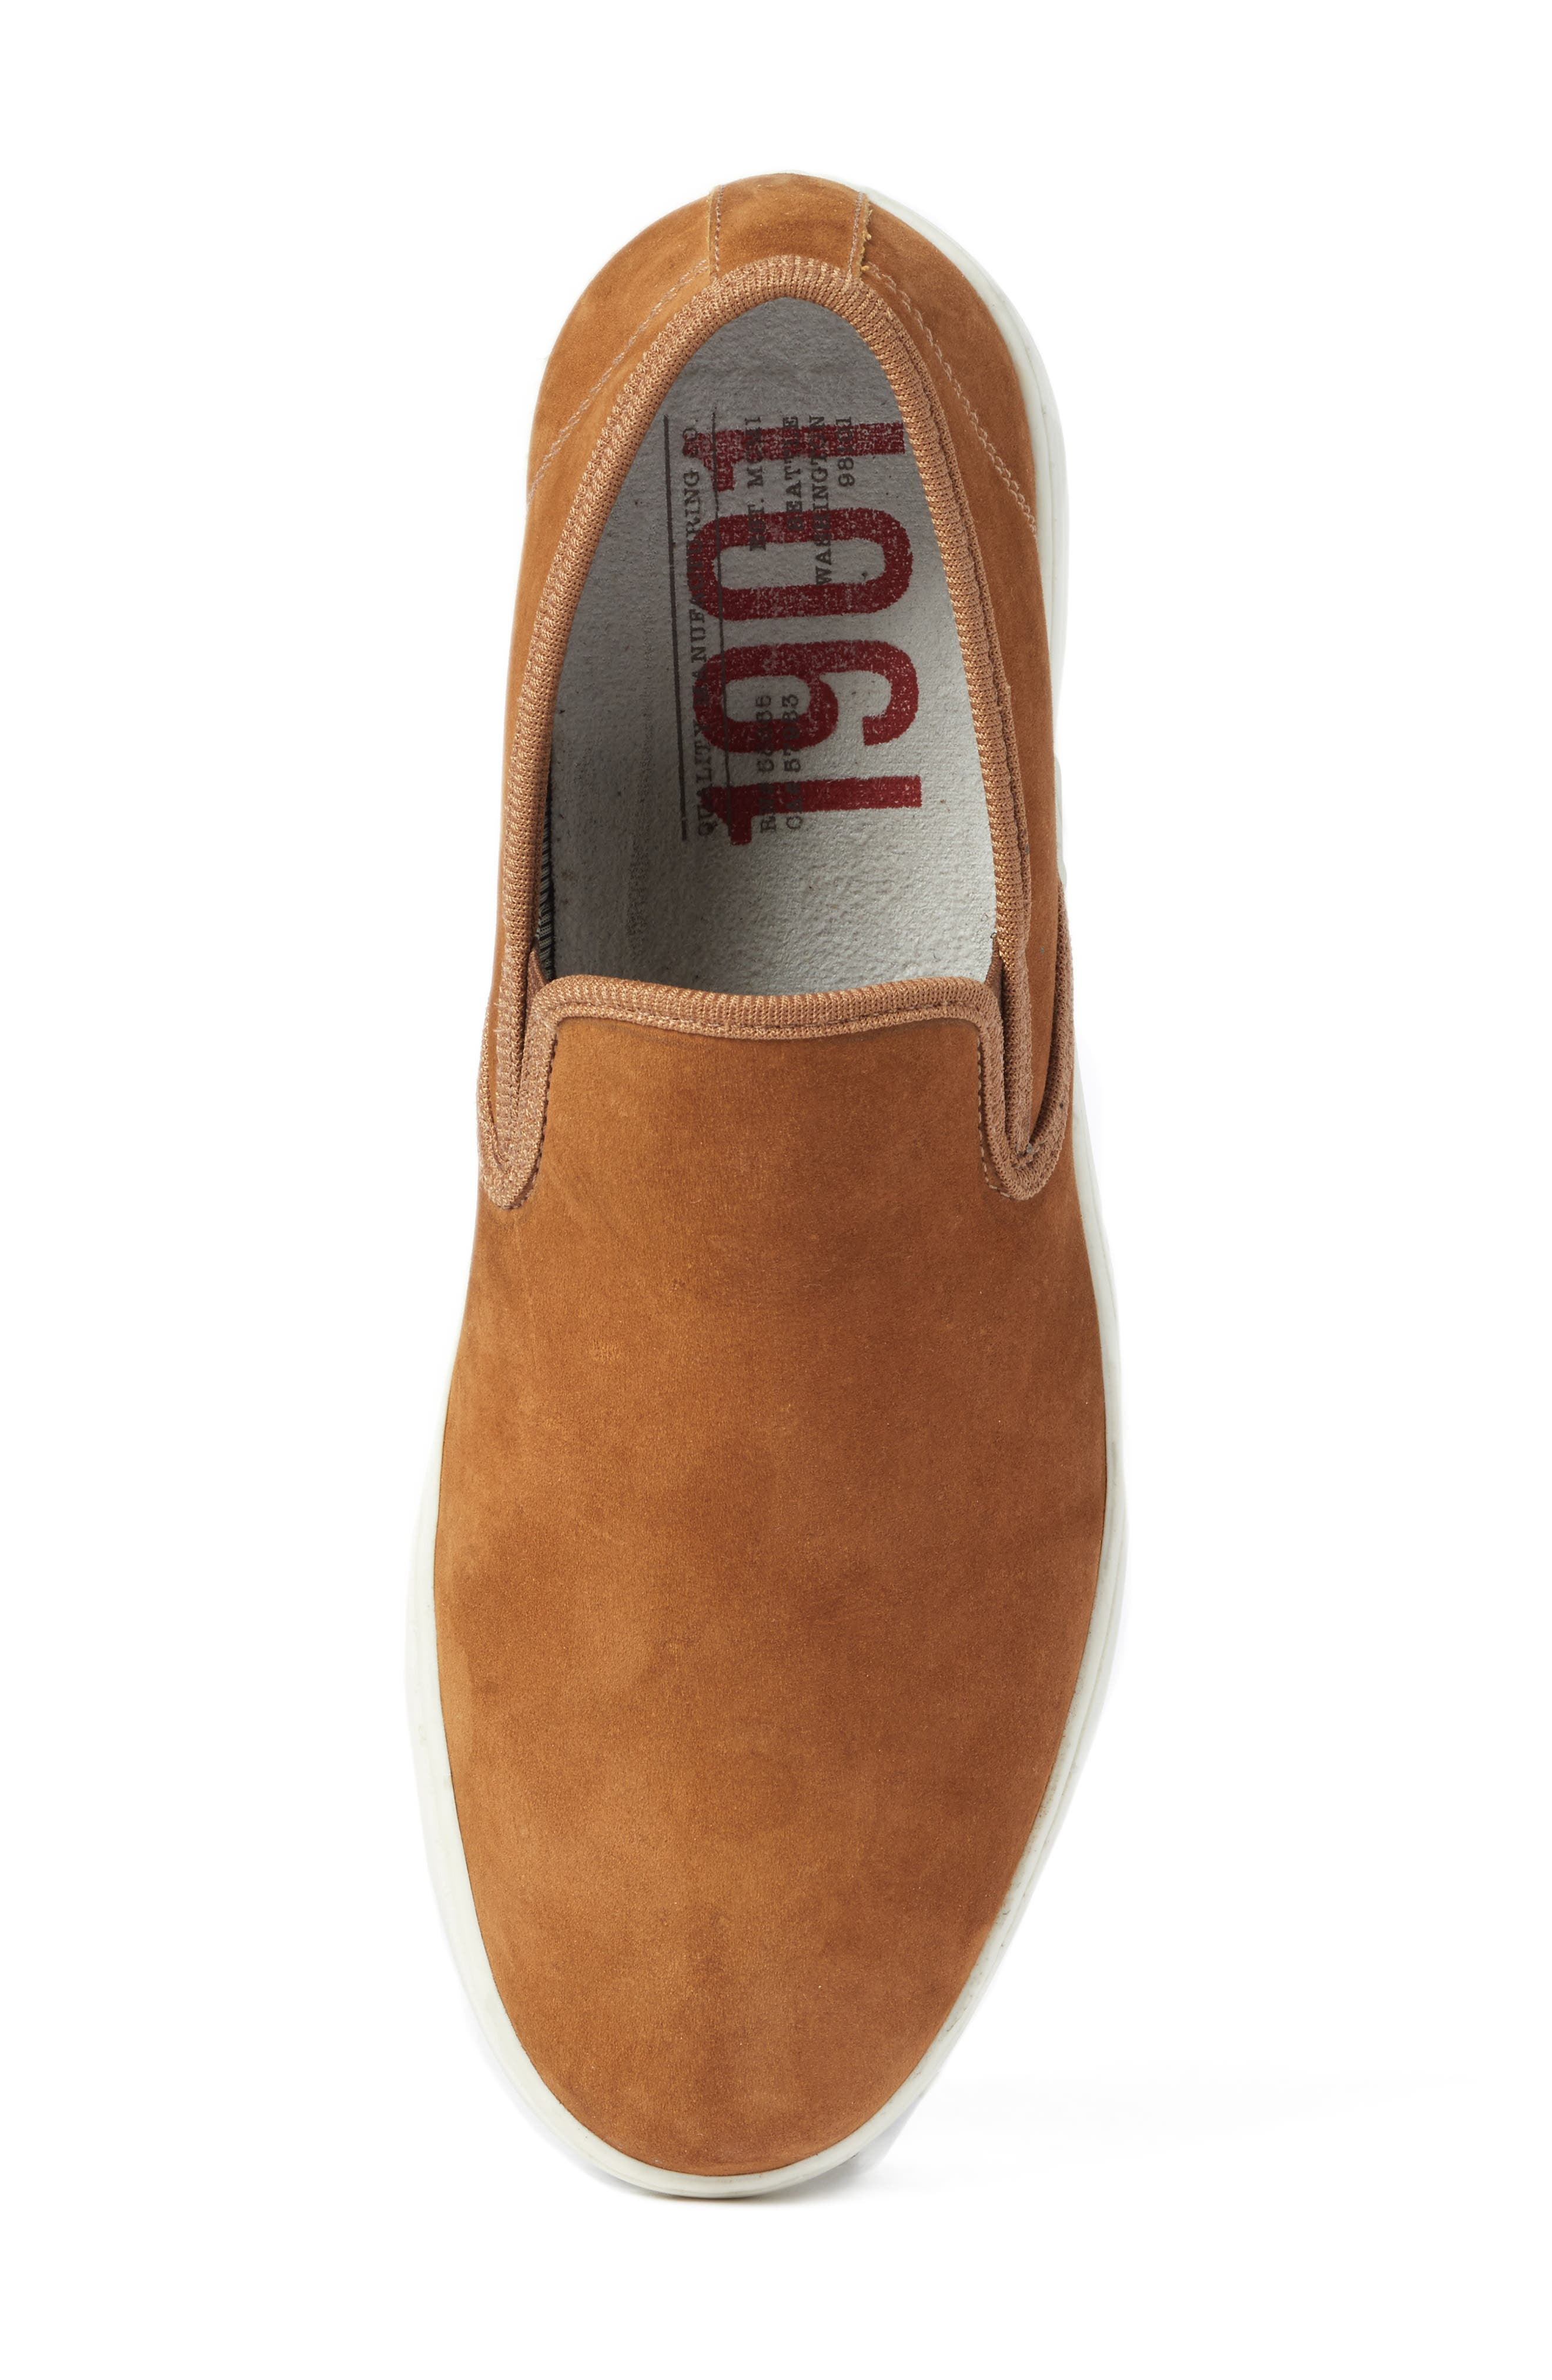 Malibu Slip-on,                             Alternate thumbnail 4, color,                             Tan Nubuck